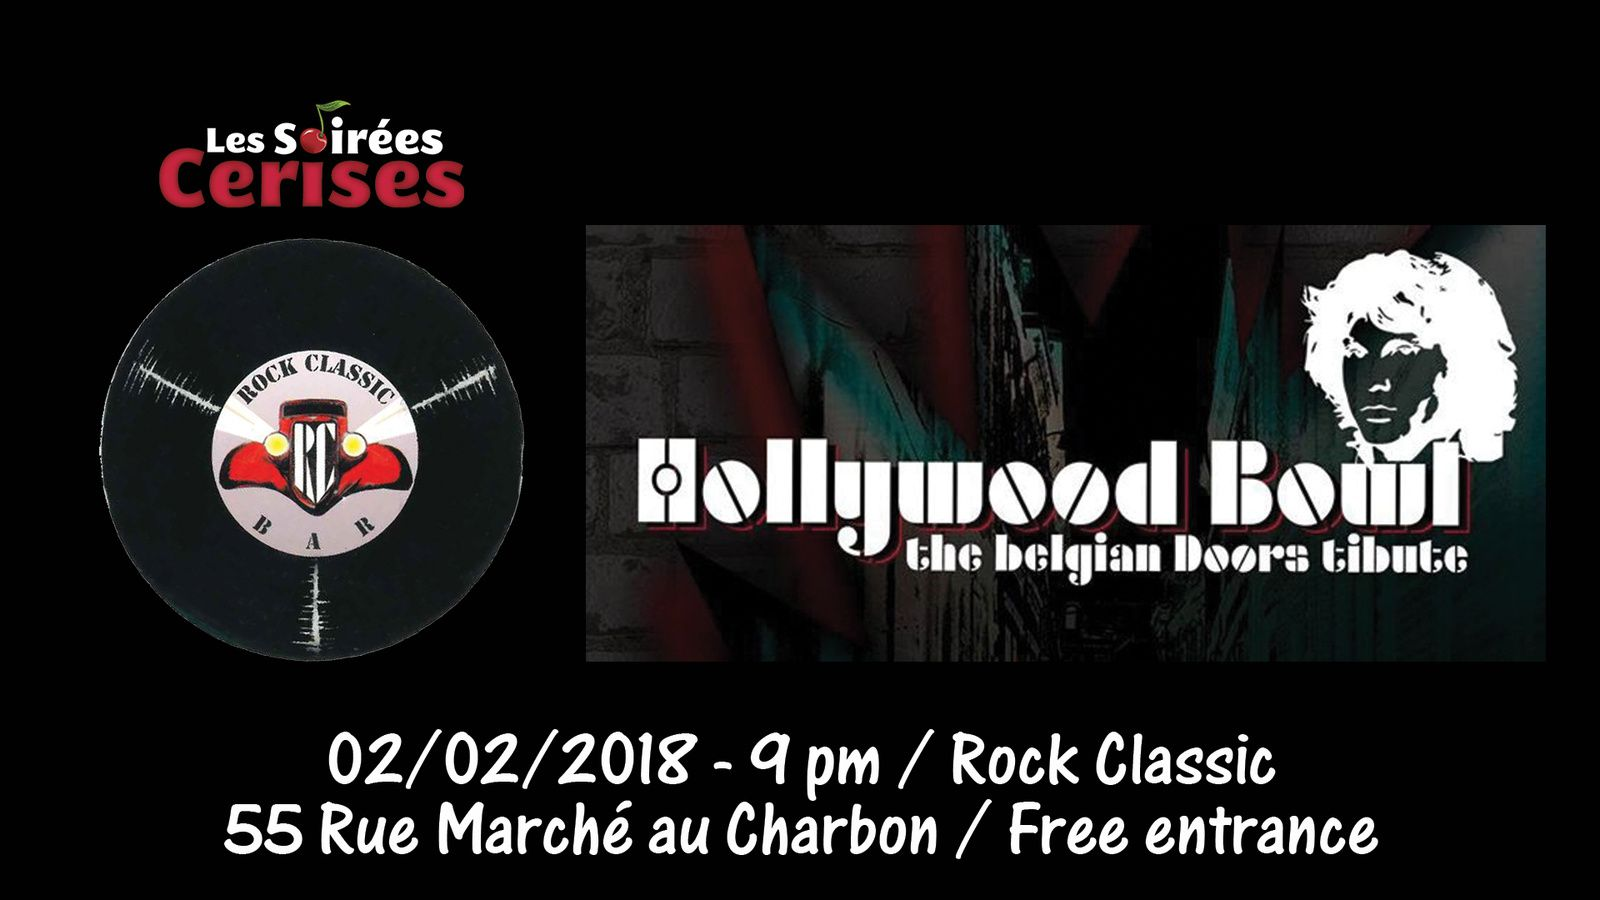 ▶ Hollywood bowl (THE DOORS tribute band) @ Rock Classic - 02/02/2018 - 21h00 - Entrée gratuite !